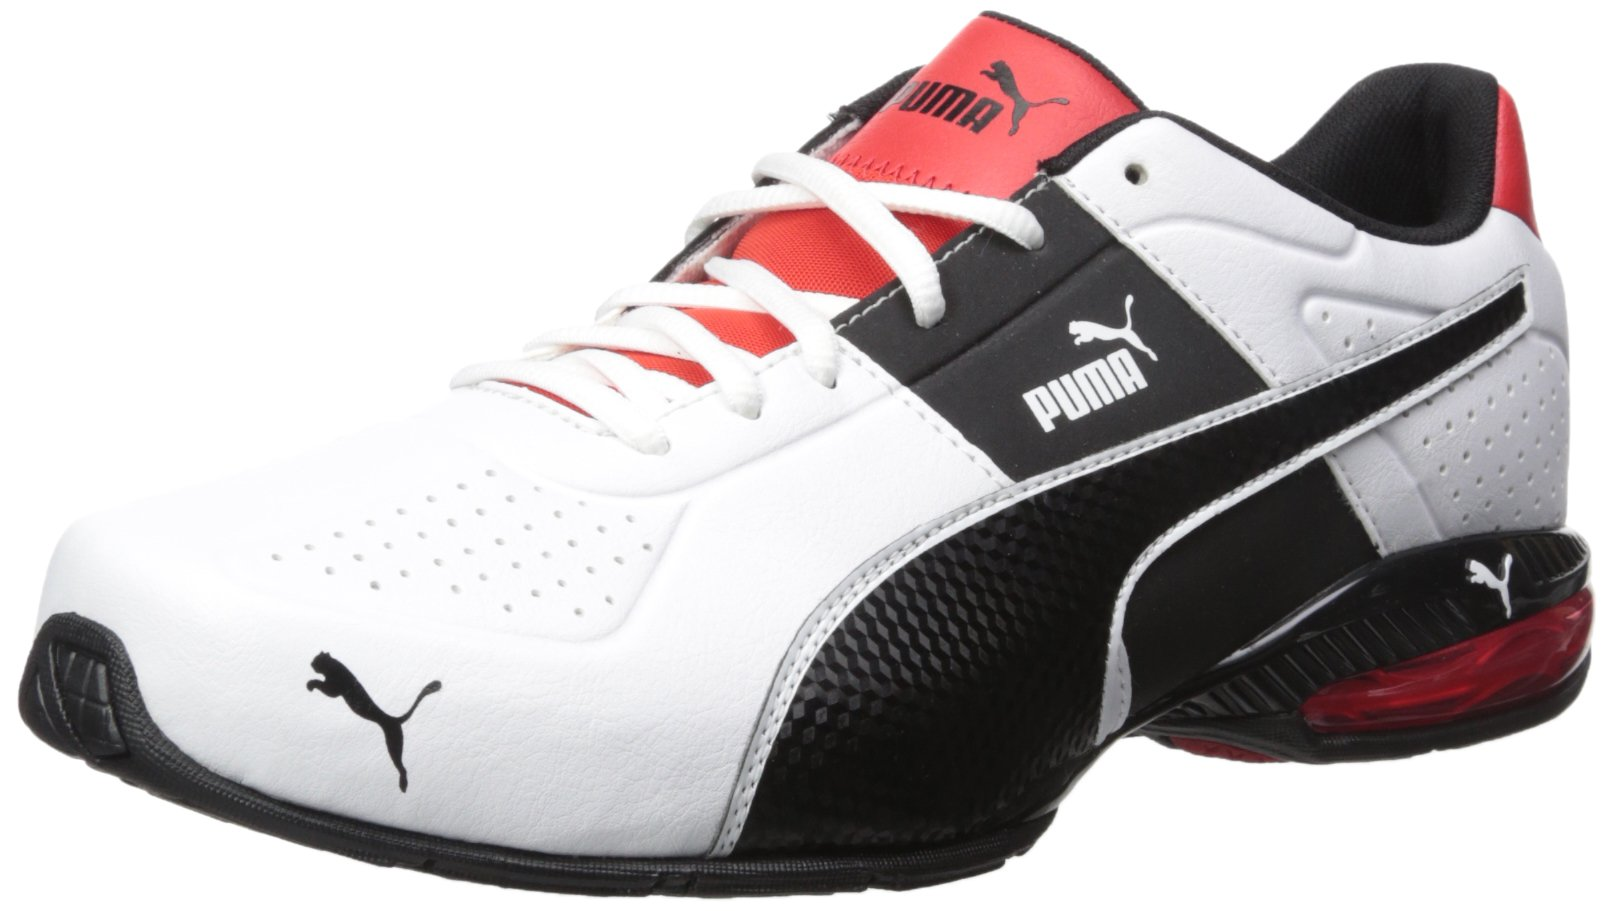 PUMA Men's Cell Surin 2.0 FM Sneaker White Black, 9.5 M US by PUMA